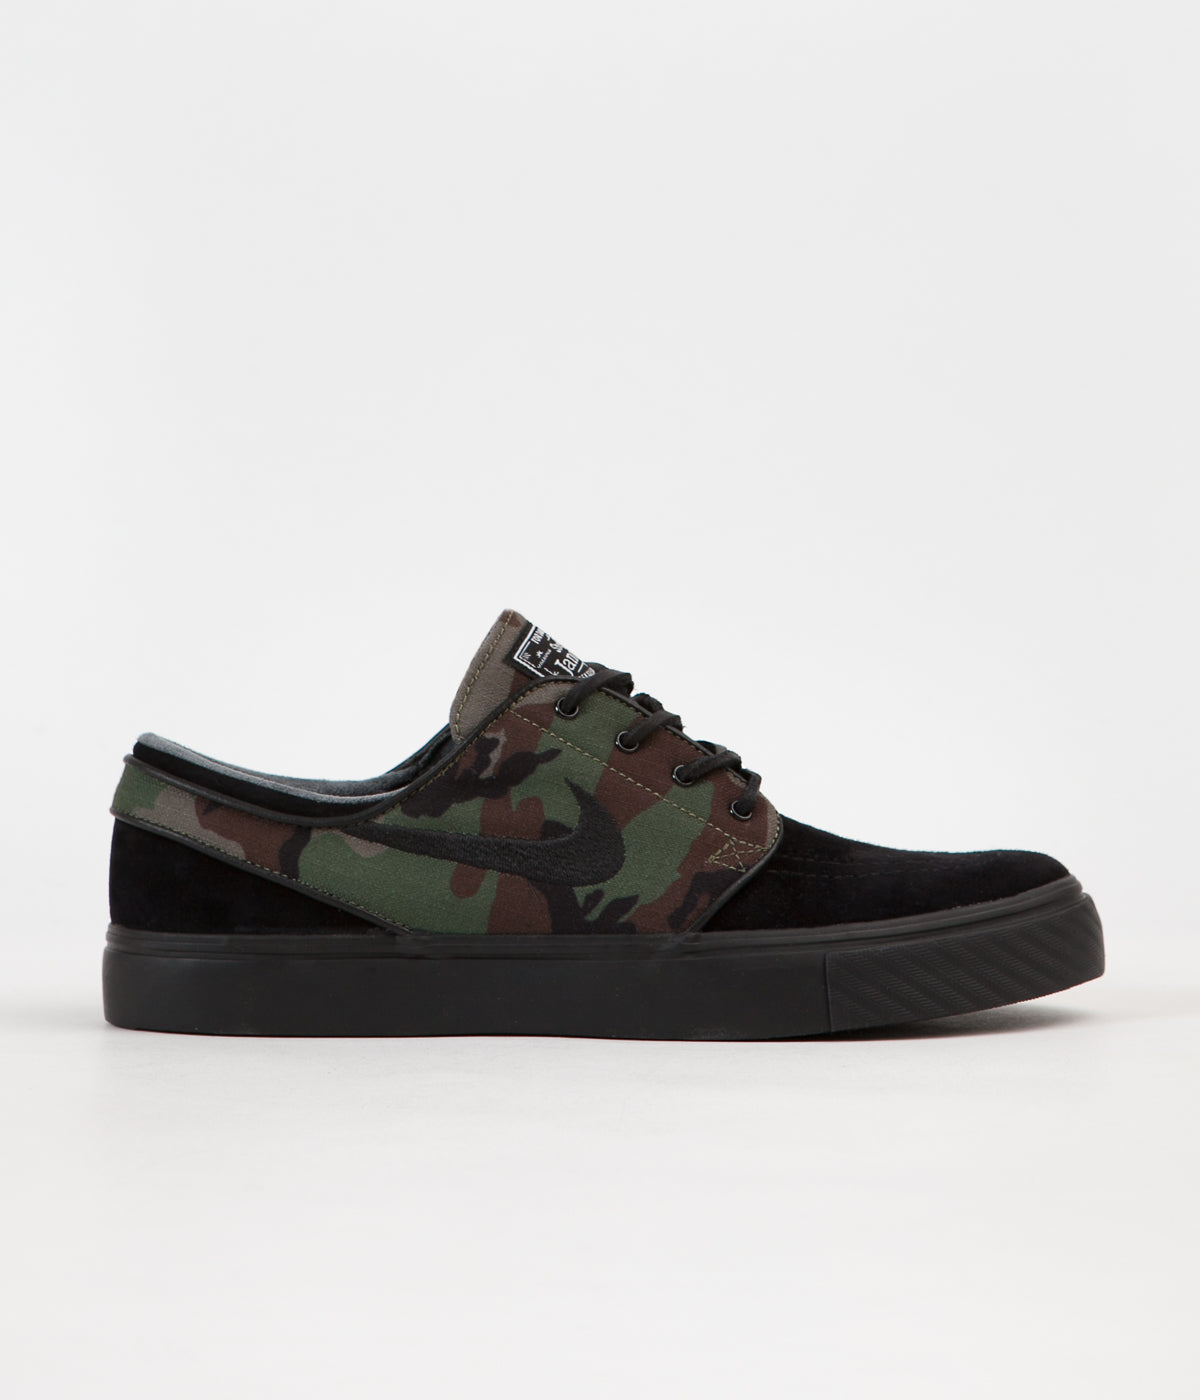 ... Nike SB Stefan Janoski OG Shoes - Black   Black - Medium Olive - White  ... 9fe0d0eaa